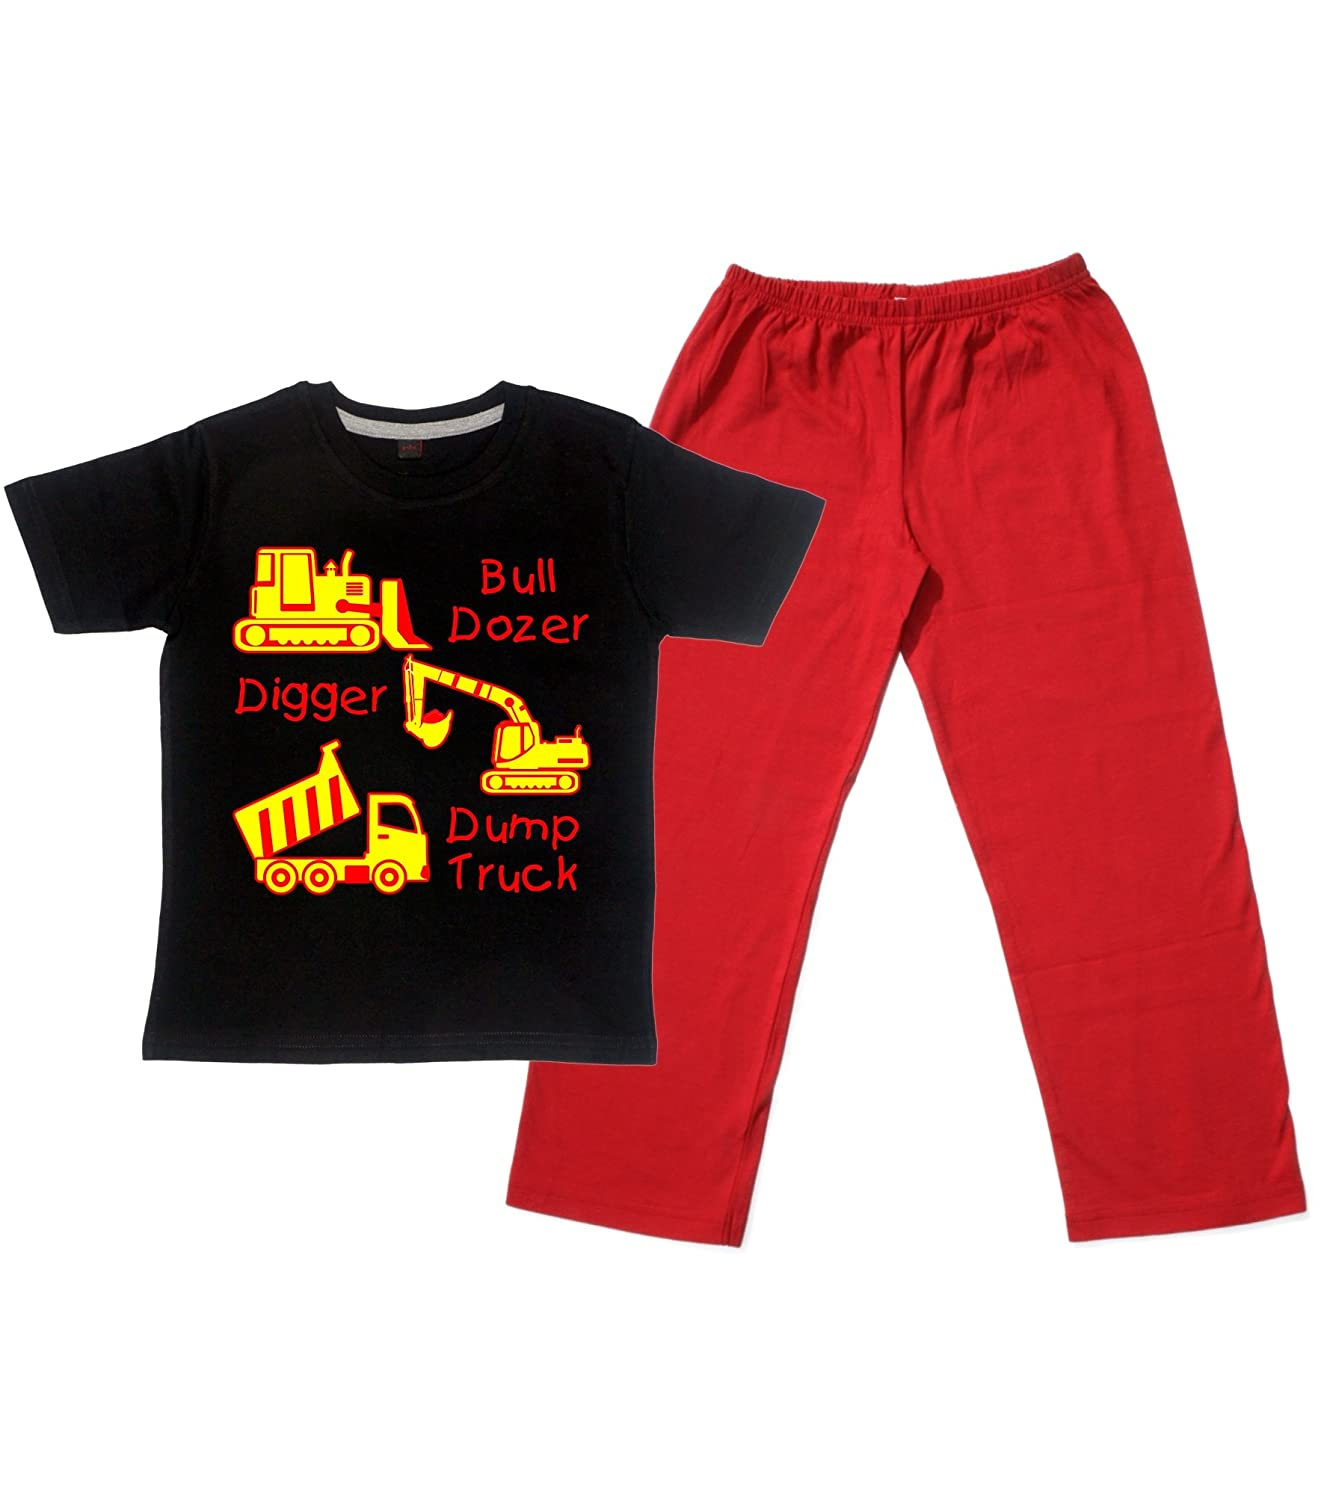 bulldozer digger u0026 dump truck u0027 children u0027s pyjama set for boys